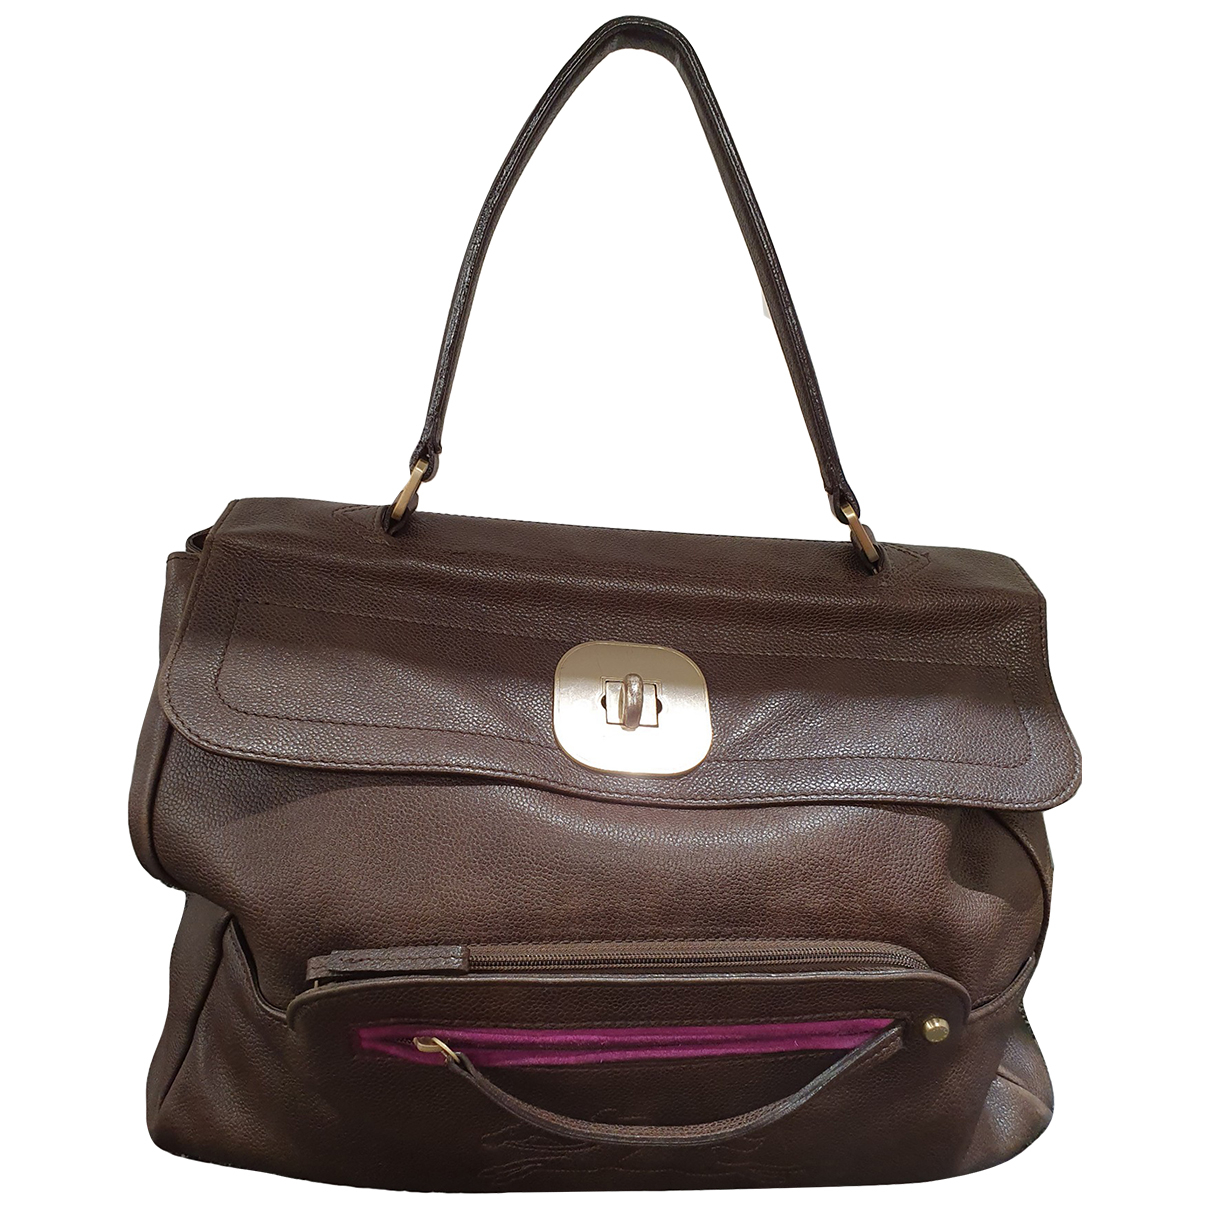 Longchamp \N Brown Leather handbag for Women \N